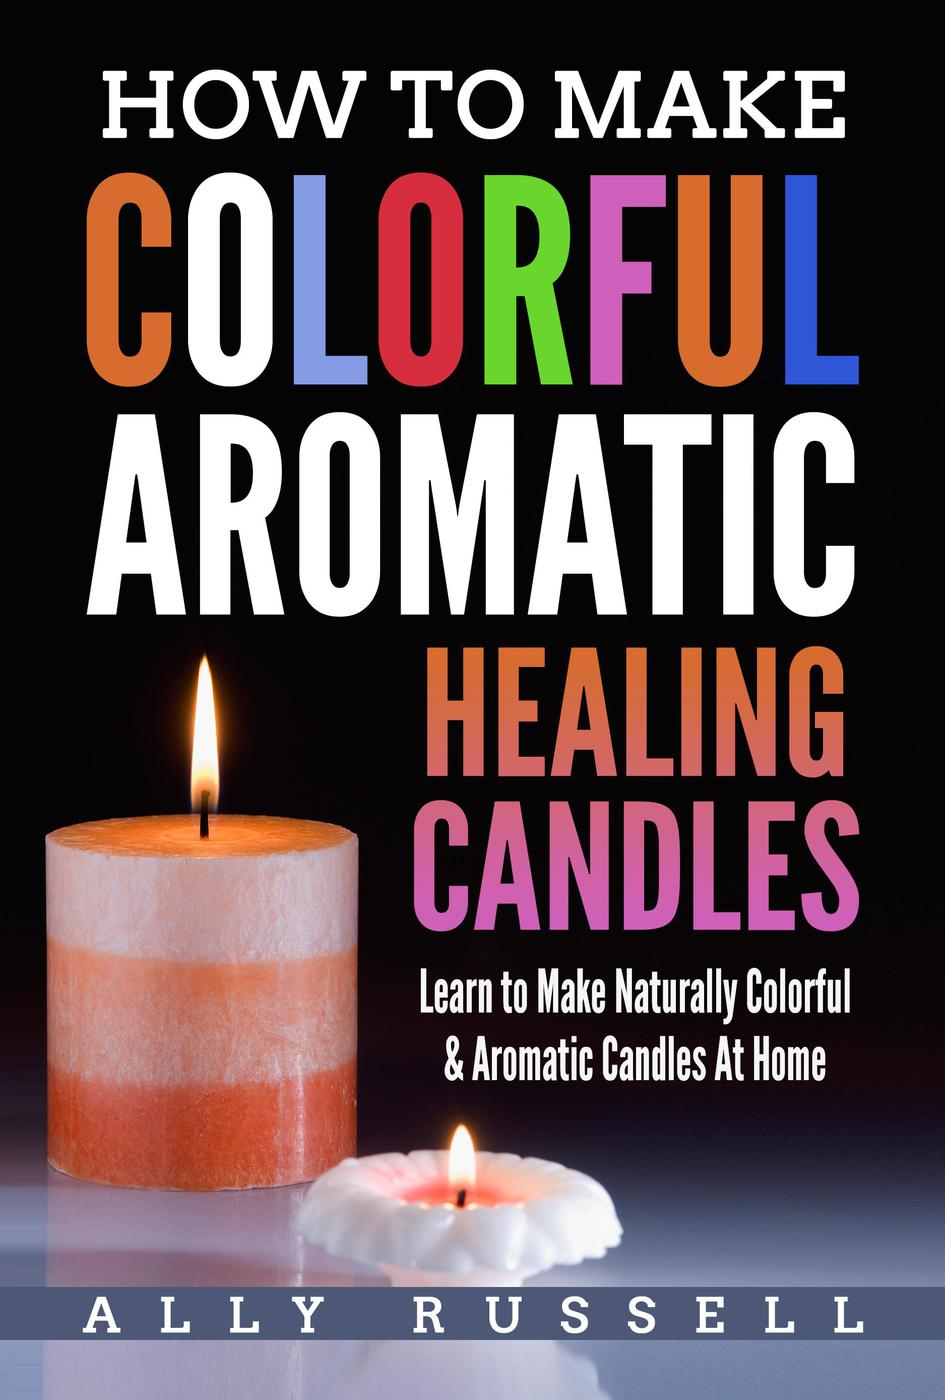 How to Make Colorful Aromatic Healing Candles - Learn to Make Natural, Colorful & Aromatic Candles at Home